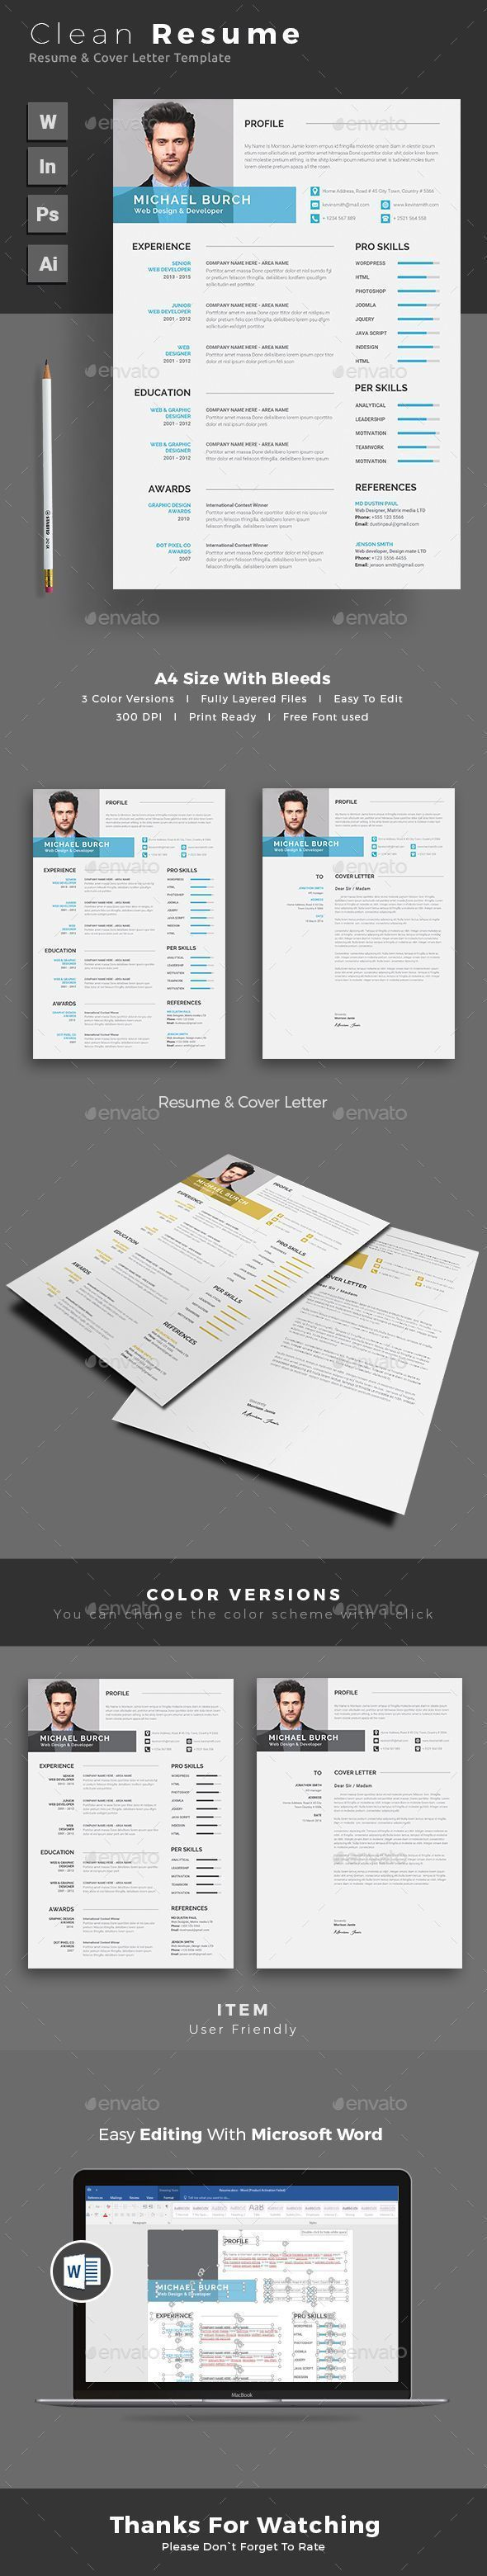 how to make cover letter of resume%0A Resume